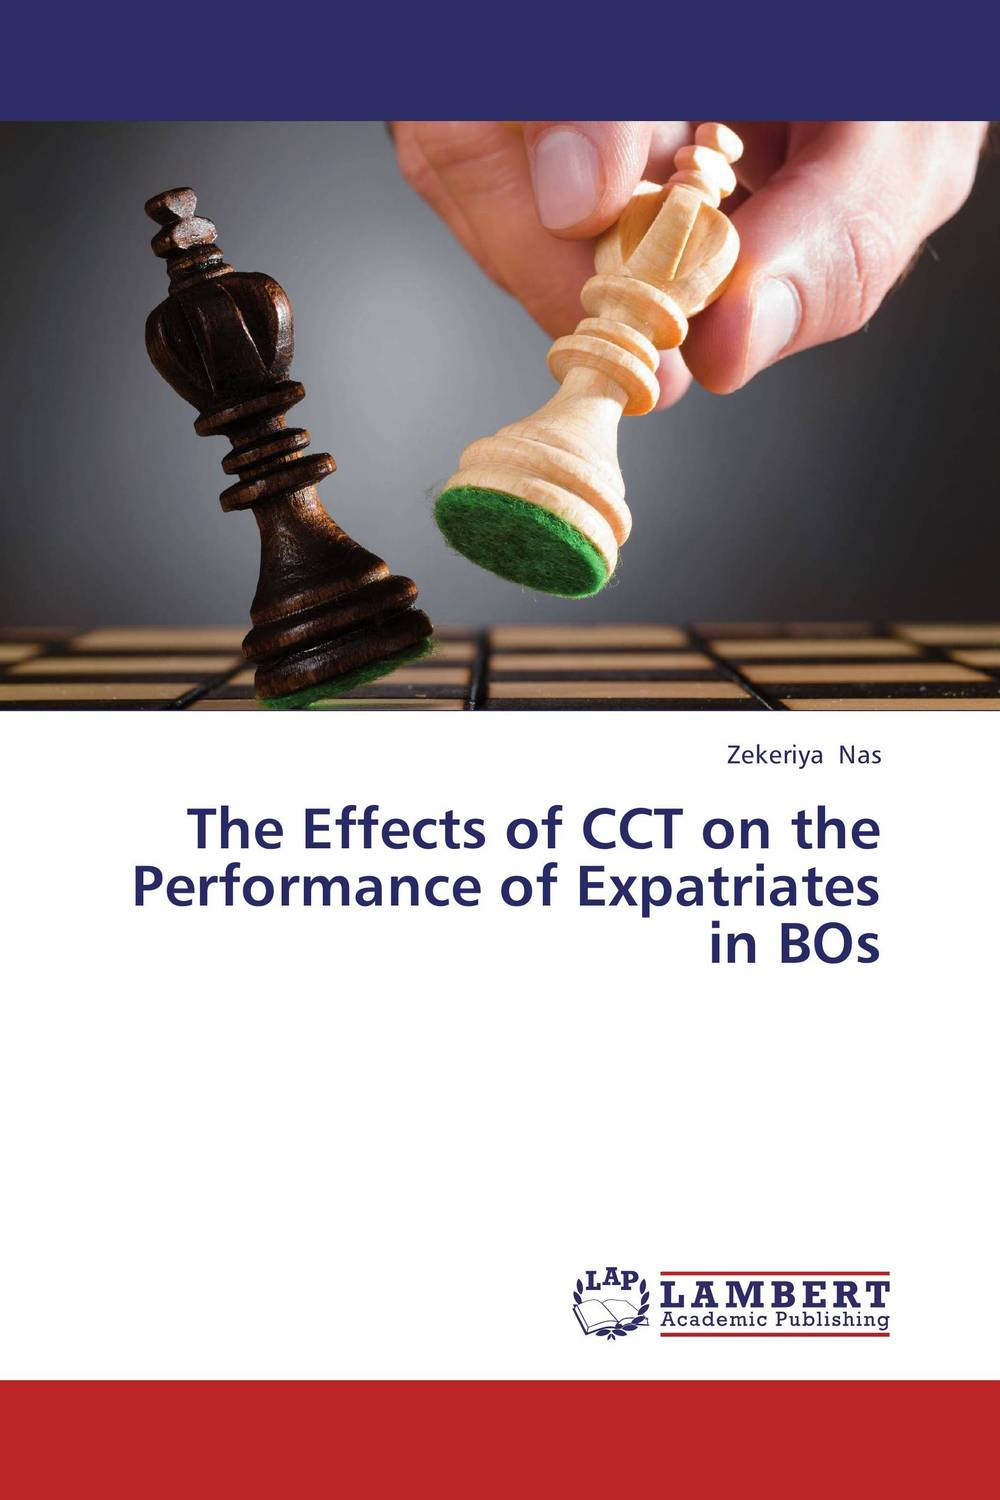 The Effects of CCT on the Performance of Expatriates in BOs